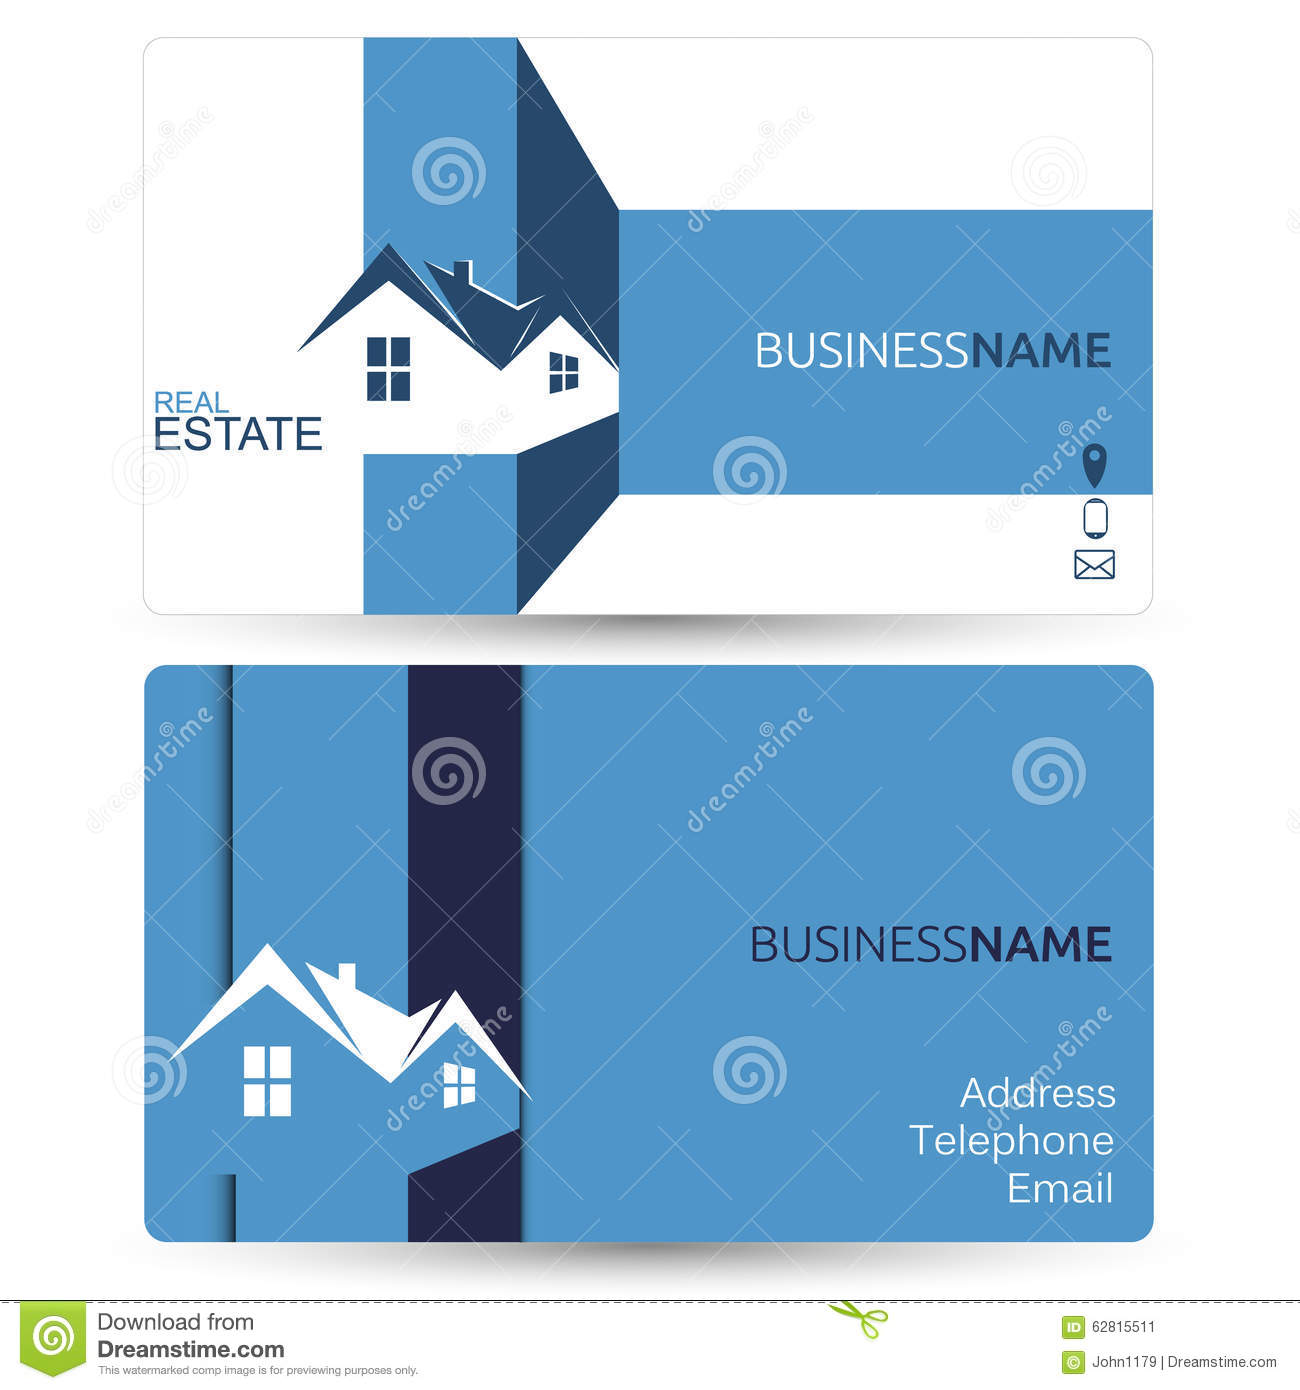 Business card for real estate stock vector illustration of house download business card for real estate stock vector illustration of house blue 62815511 reheart Images